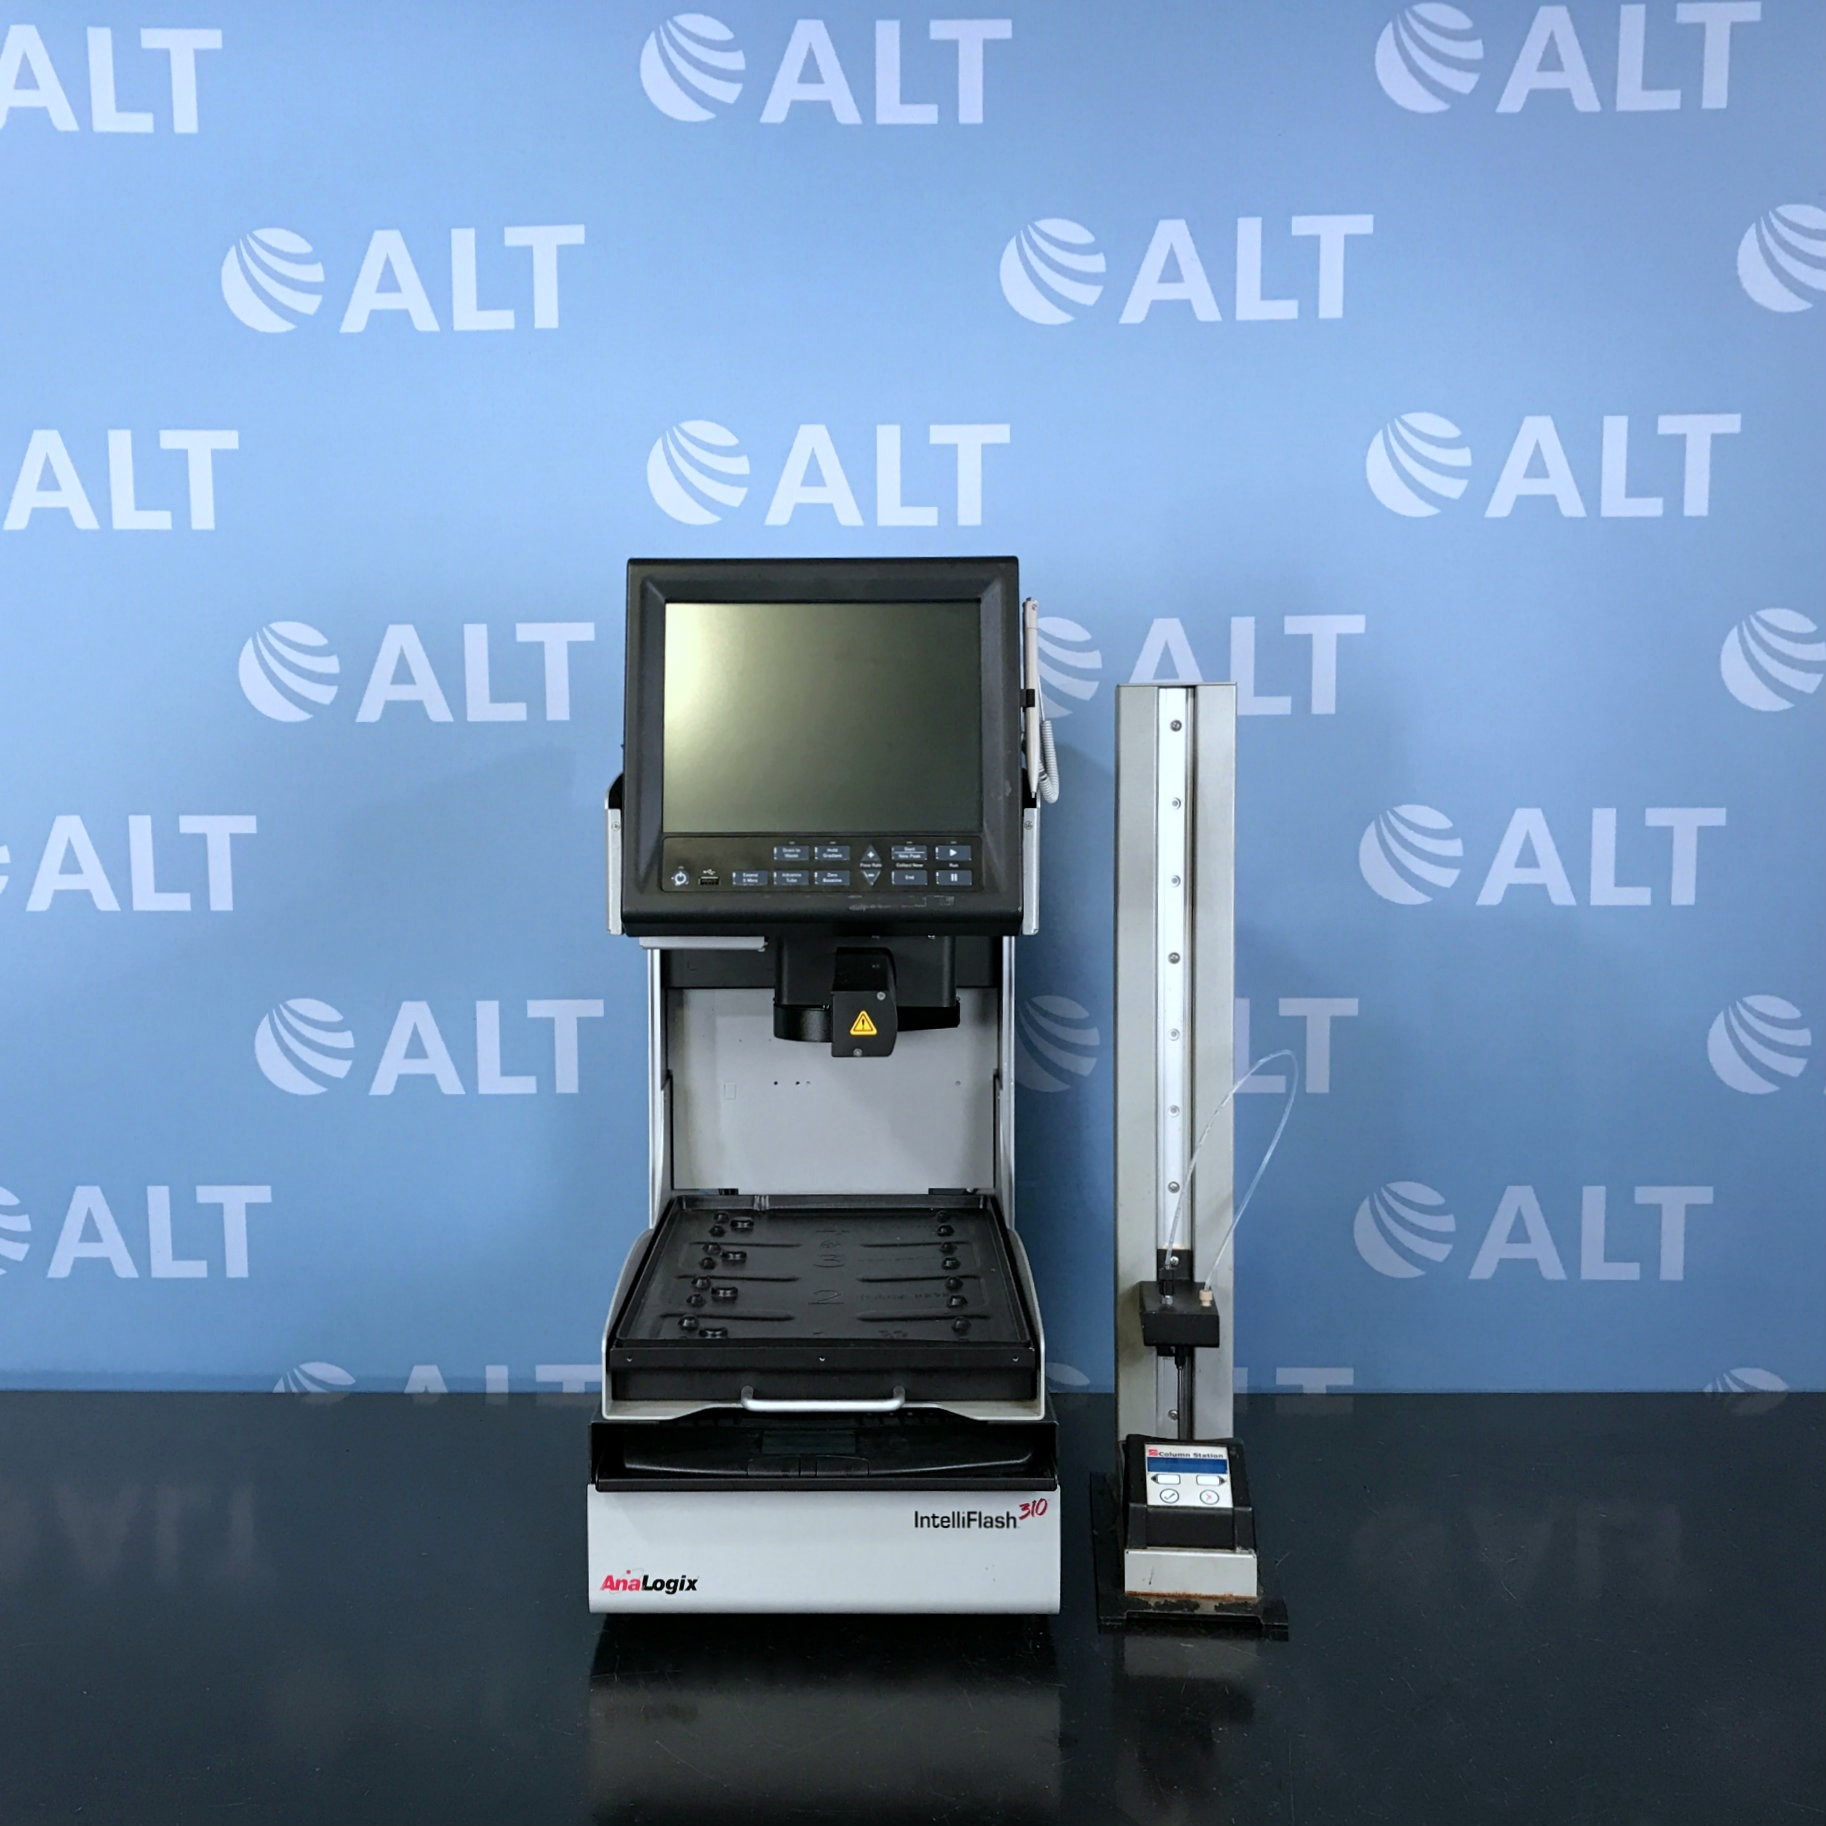 Analogix IntelliFlash 310 System Flash Chromatography Workstation Image